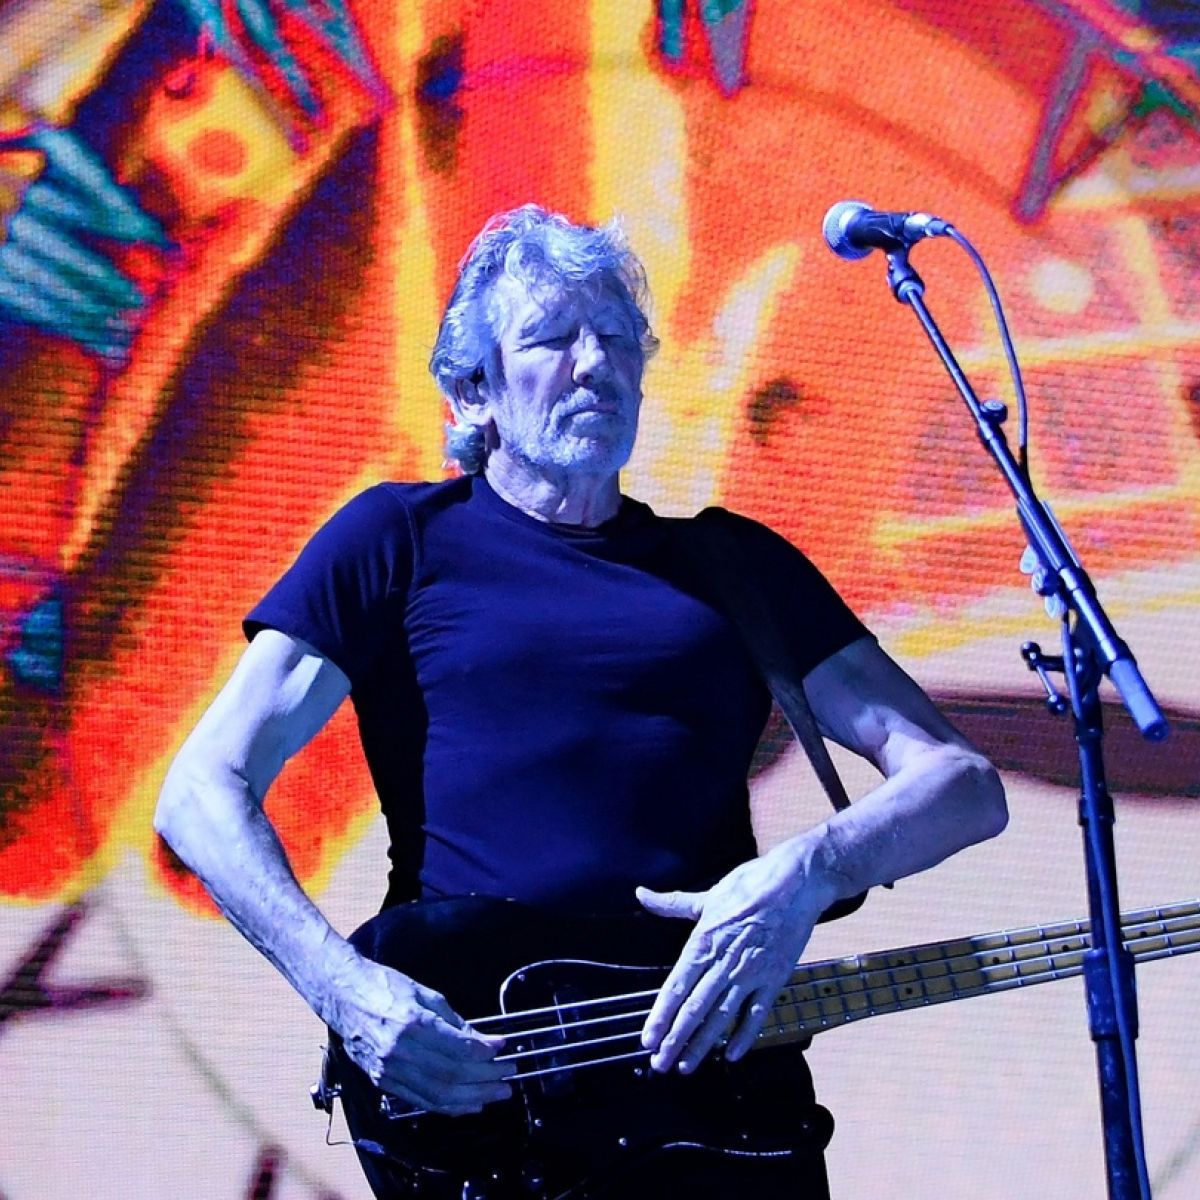 Roger Waters at 3Arena: Everything you need to know